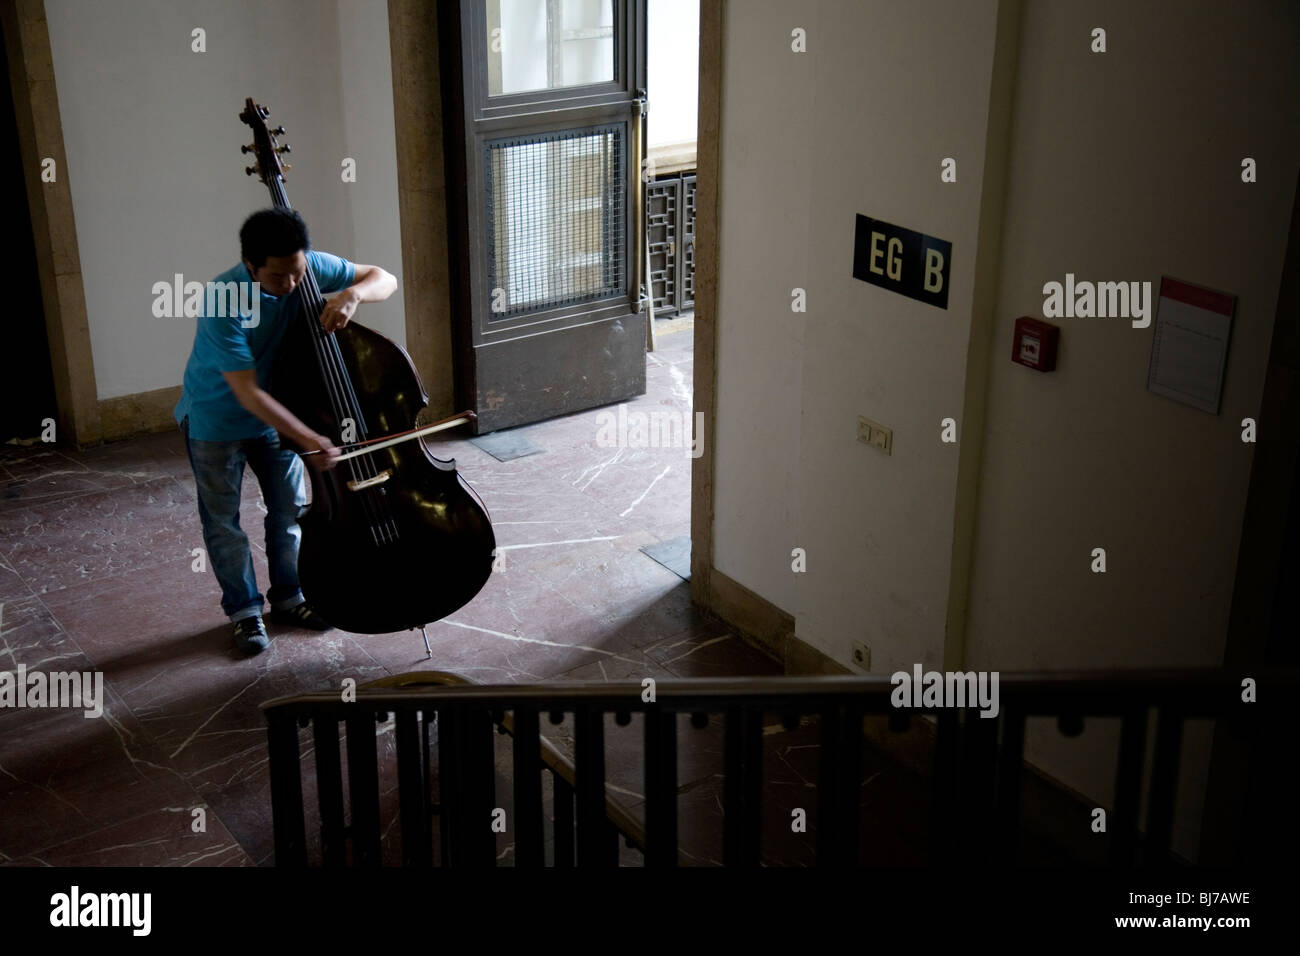 A Cello player rehearsing at the end of a staircase Stock Photo